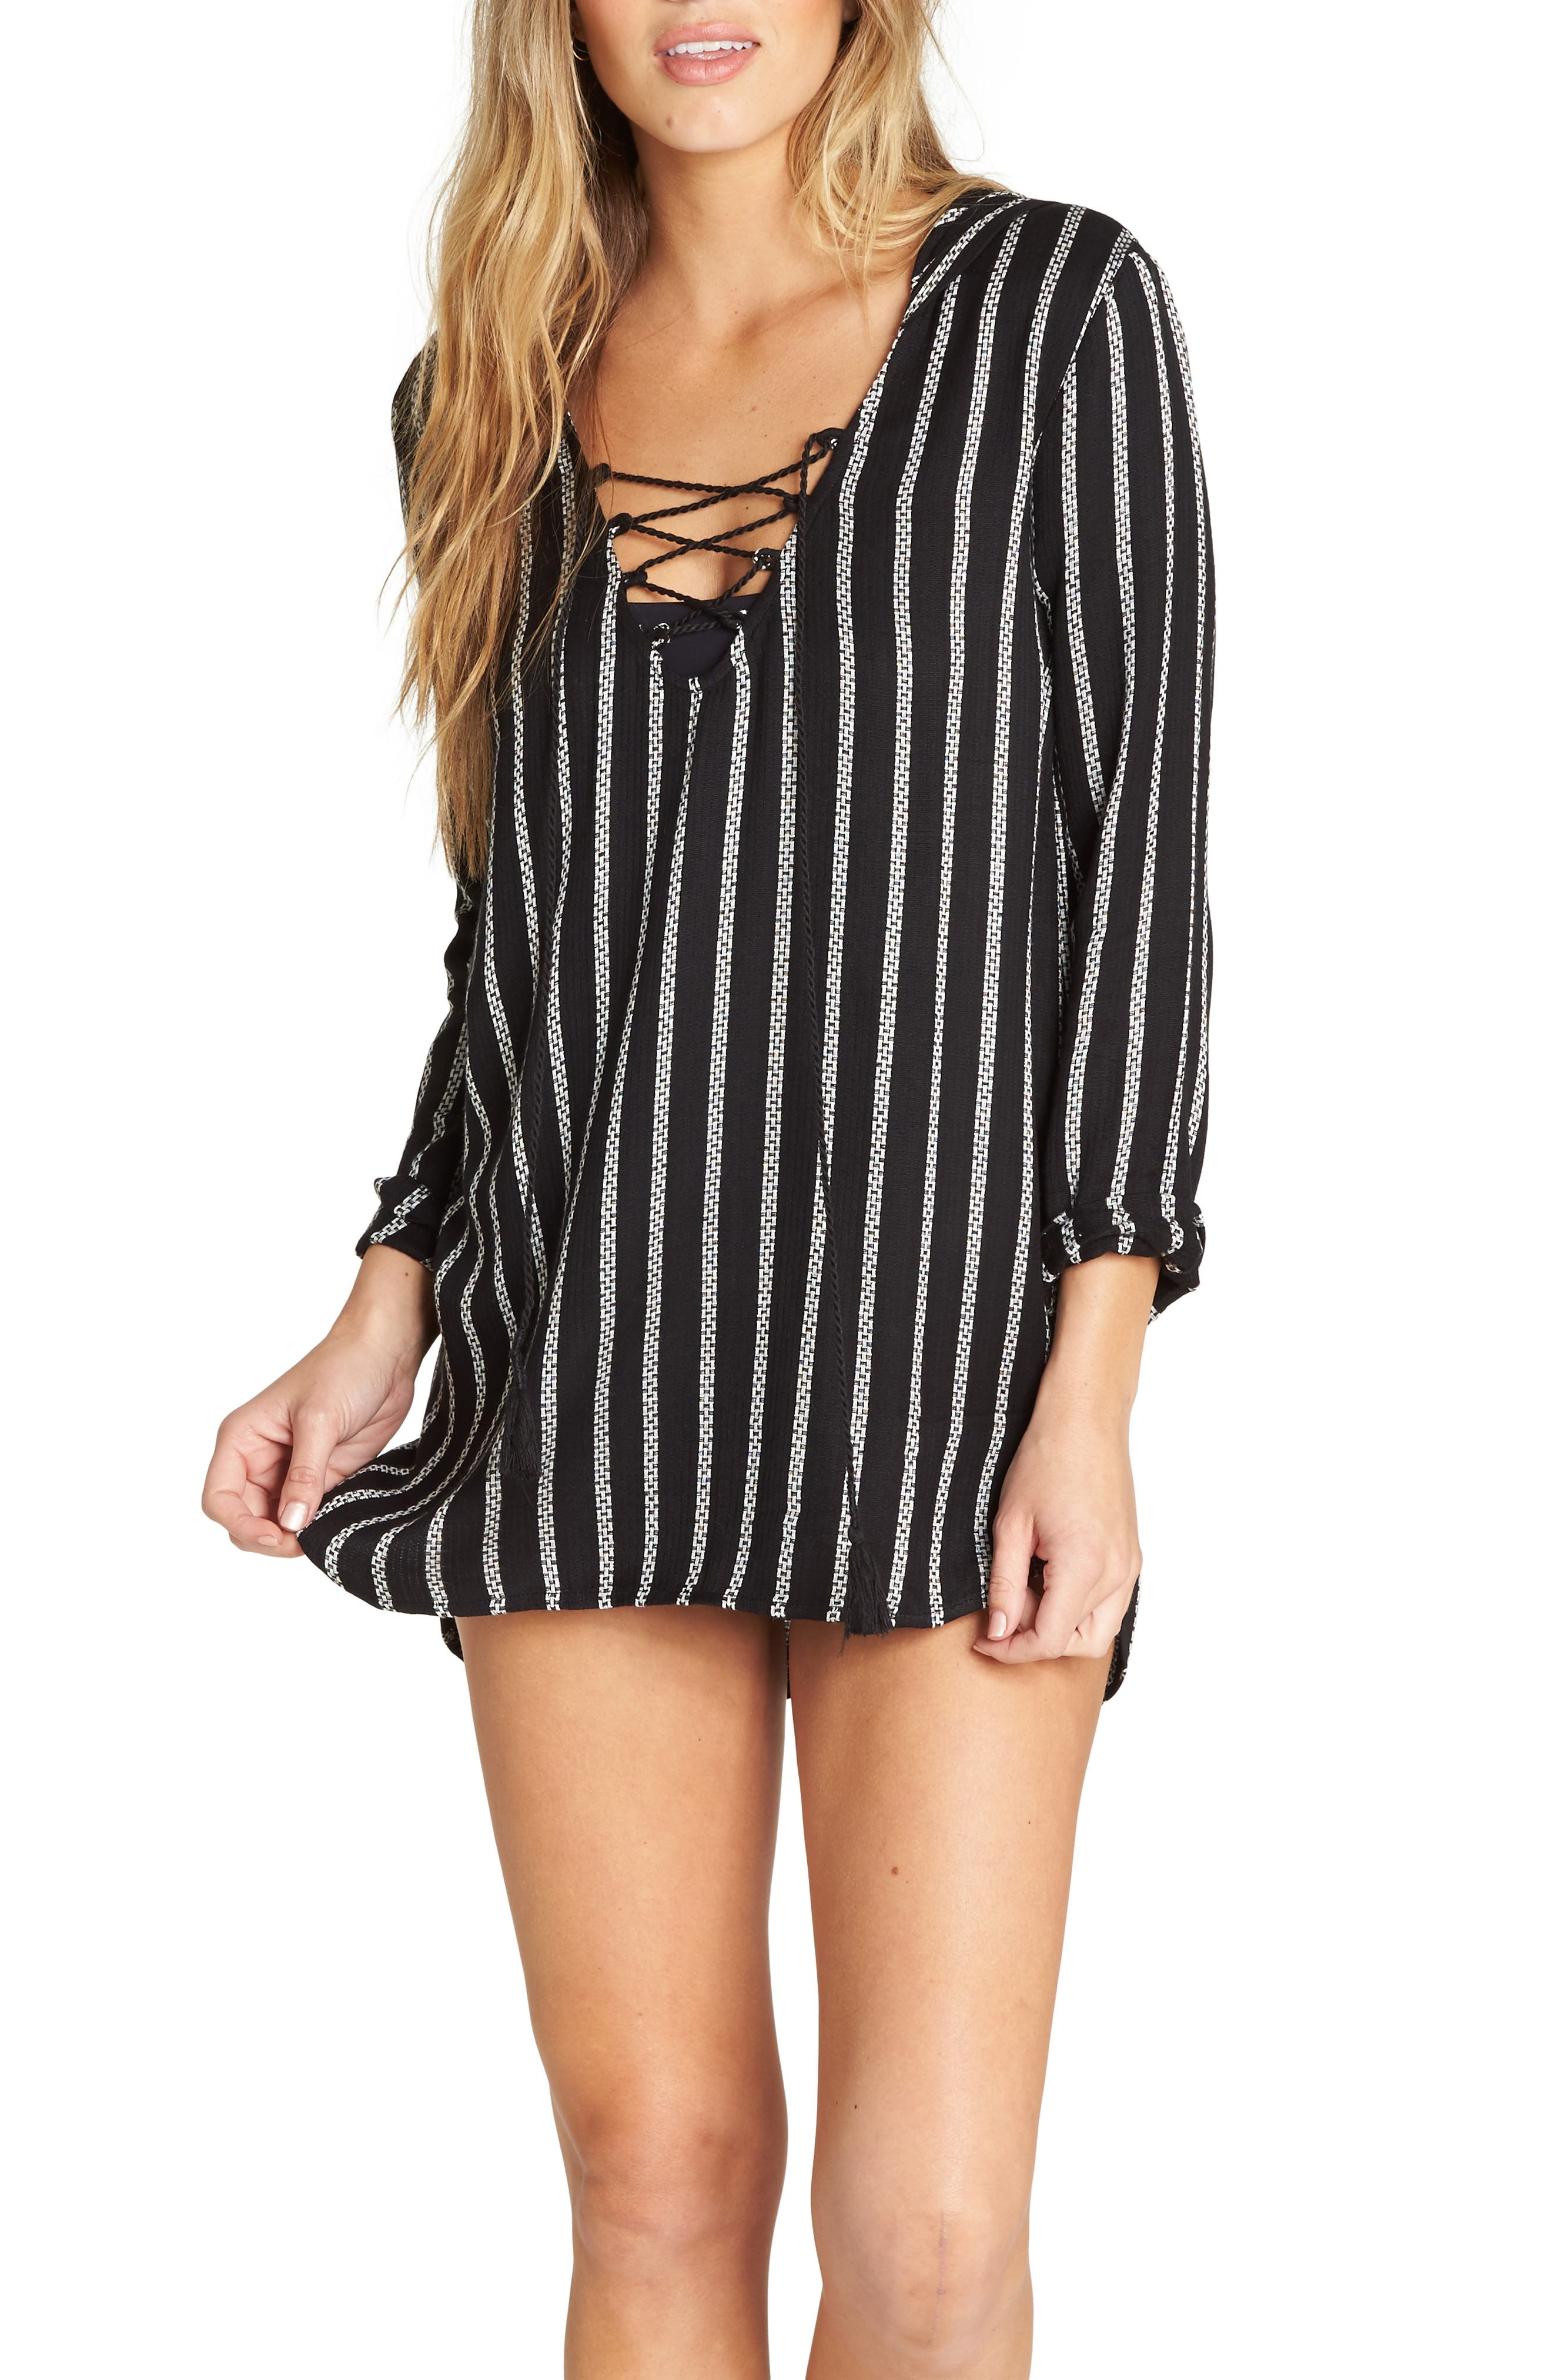 de192fd5f3 Black Billabong Dresses, Jackets & Clothing for Women | Nordstrom